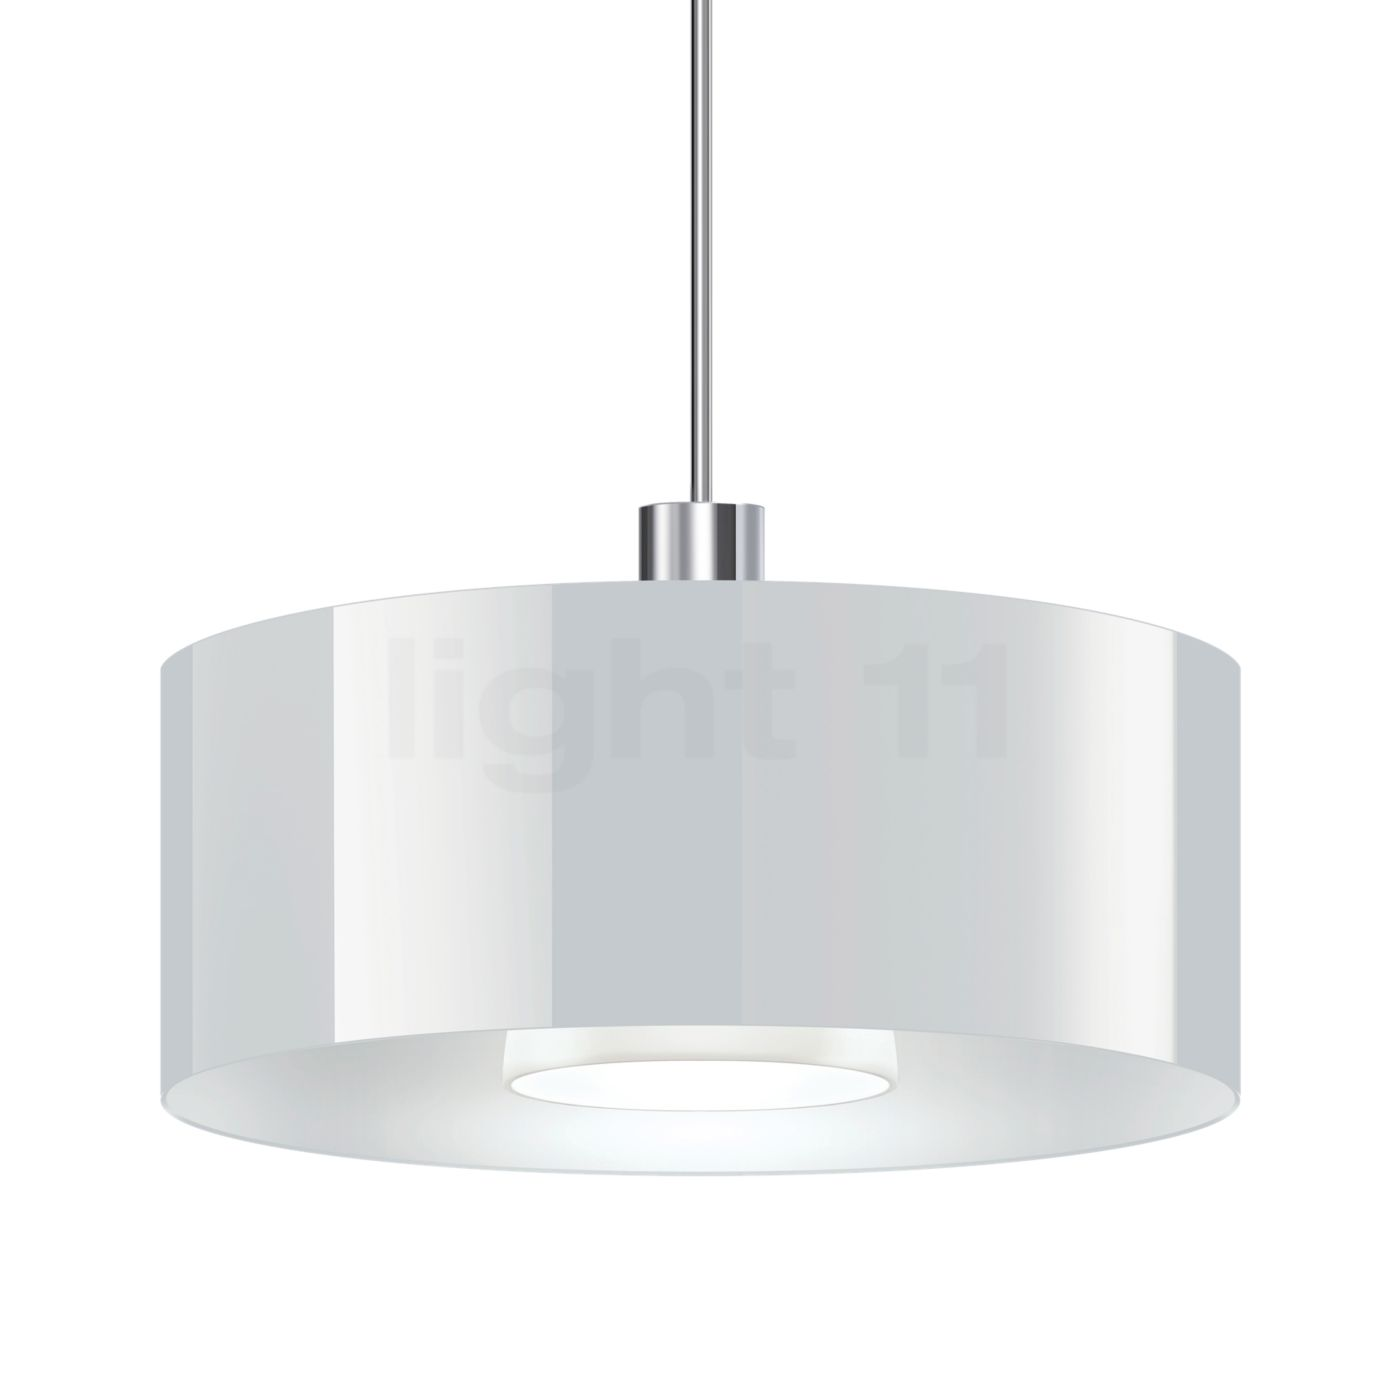 Buy Bruck Cantara Glas 300 Down 350mA PNT Pendant Light Incl. LED Point Lamp  Canopy At